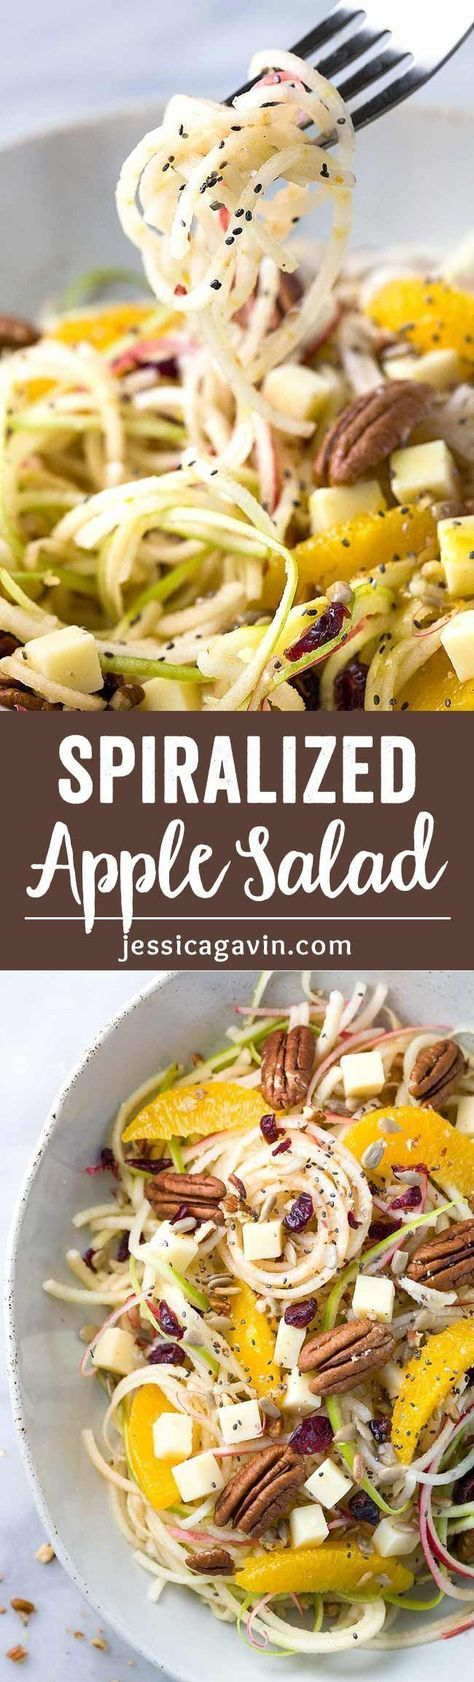 Spiralized Apple Salad with Citrus Dressing - Healthy and refreshing recipe made in only 15 minutes! Topped with oranges, pecans, cheddar cheese, cranberries, sunflower and chia seeds.